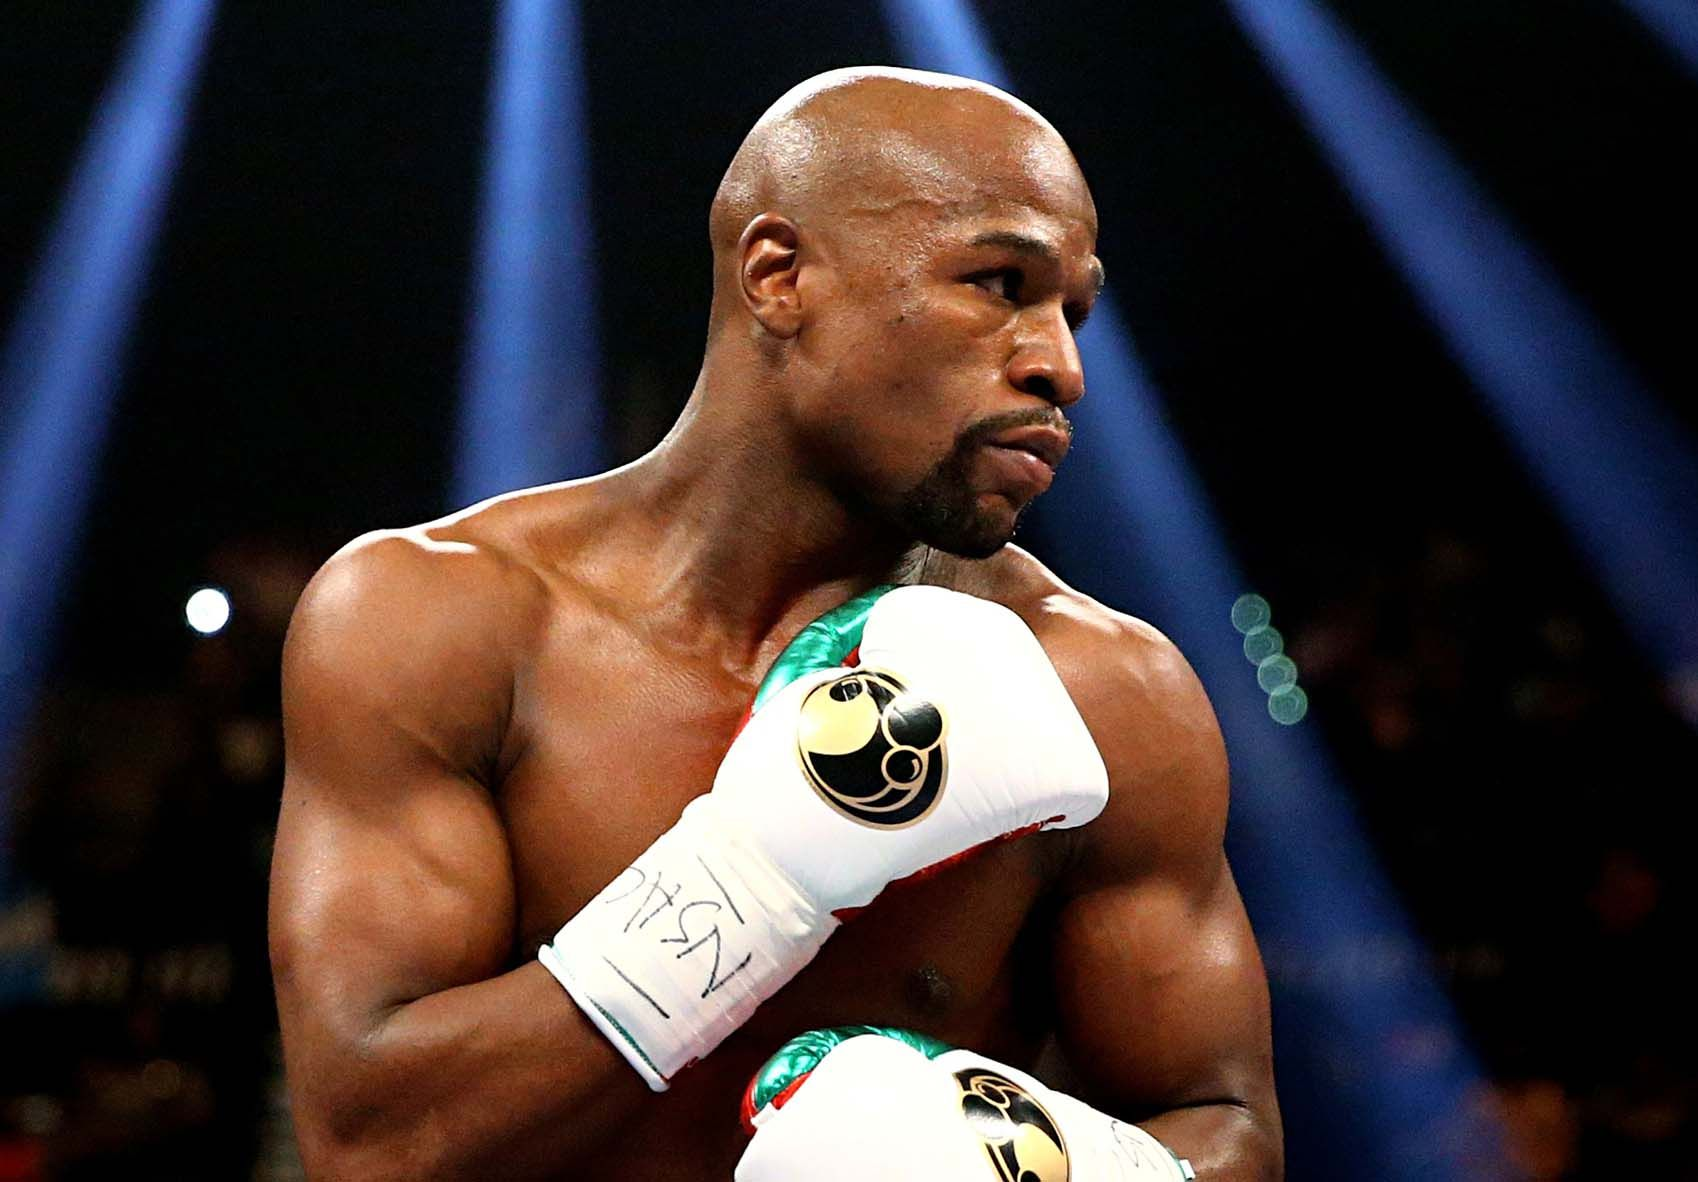 FLOYD MAYWEATHER MIGHT BE RETURNING TO THE RING TO MAKE 1